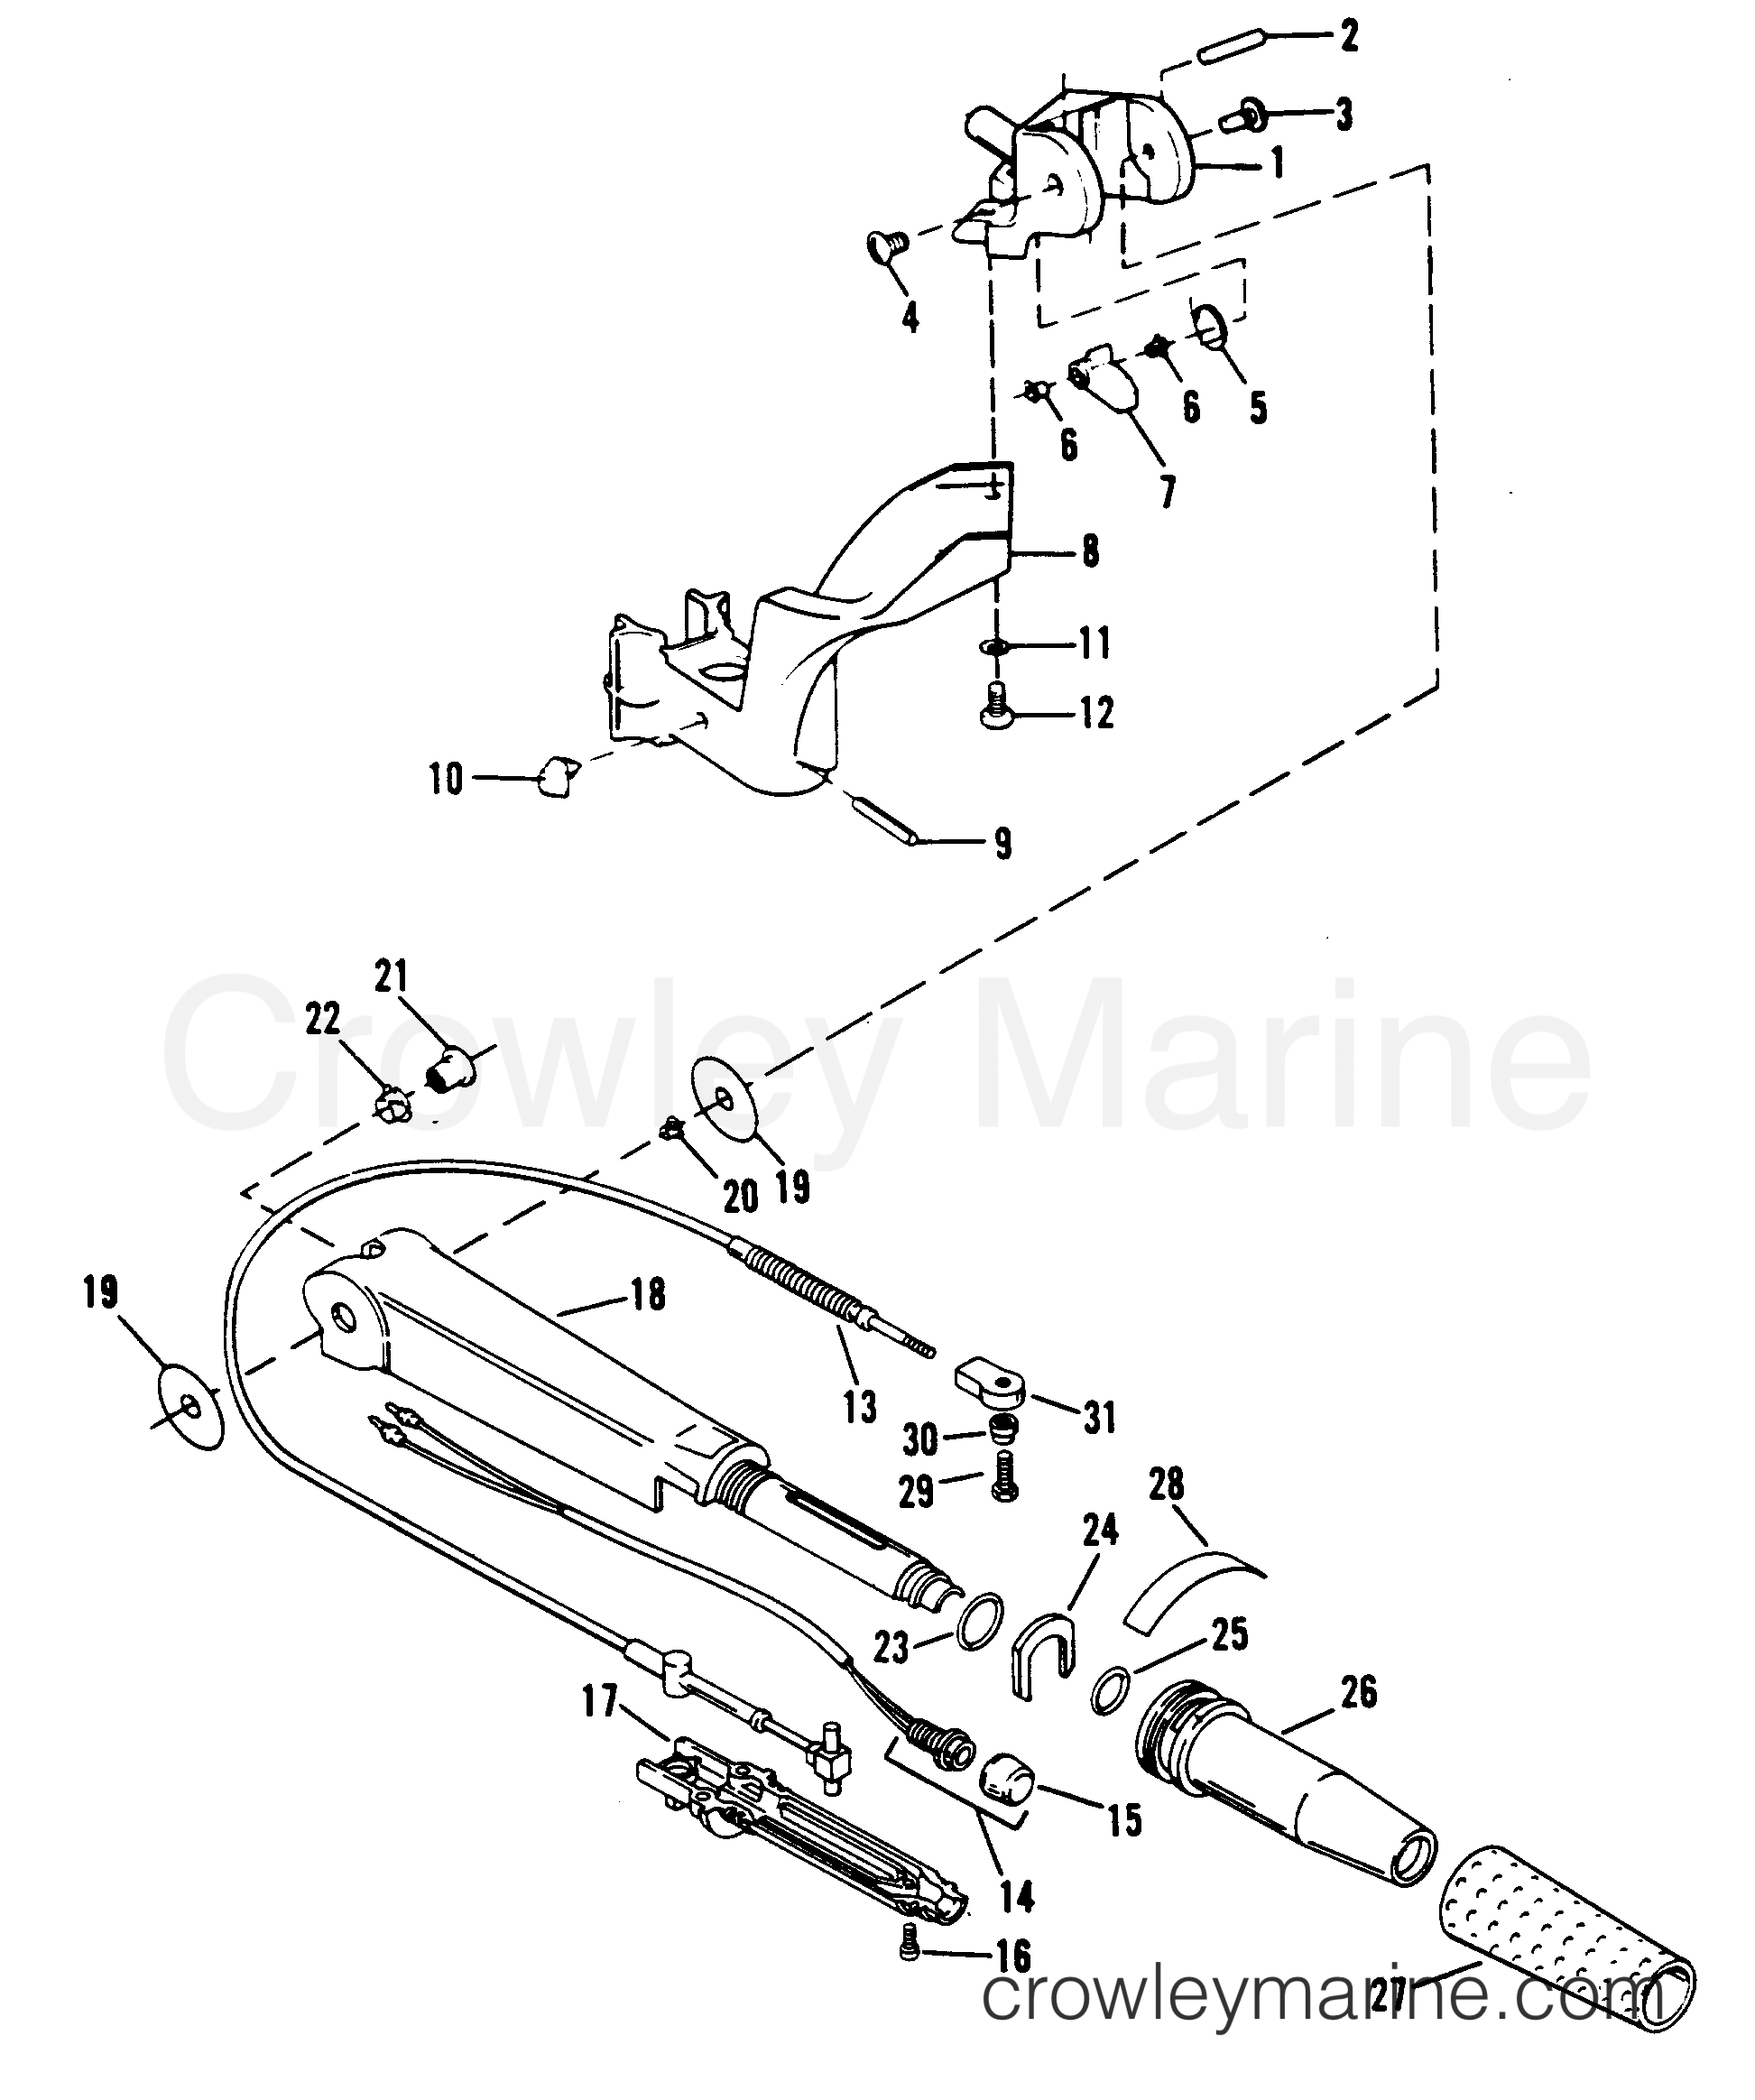 tiller handle and throttle linkage